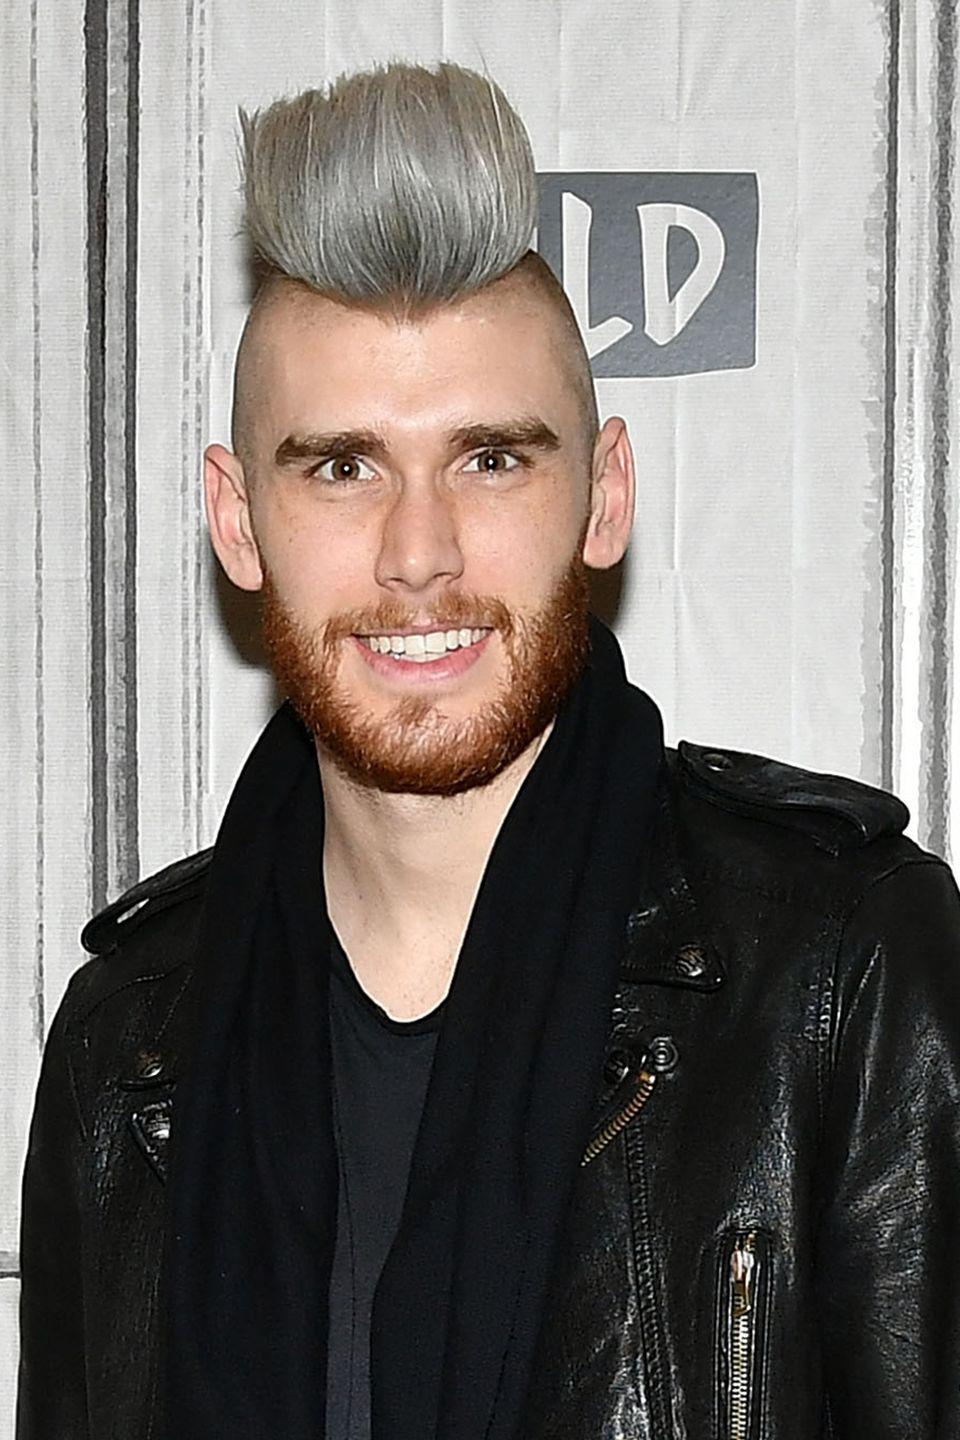 """<p>Since his time on season 11 of <em>American Idol, </em>Colton has had two albums top the Christian music charts. And his religion may be why Colton and his wife Annie reportedly <a href=""""http://people.com/tv/colton-dixon-on-saving-sex-for-marriage-it-was-not-easy-but-it-was-more-meaningful-to-wait/"""" rel=""""nofollow noopener"""" target=""""_blank"""" data-ylk=""""slk:didn't even sleep in the same bed"""" class=""""link rapid-noclick-resp"""">didn't even sleep in the same bed</a> until they were married in 2016. </p><p>""""It was kind of strange: we checked into the room and realized, 'We actually get to go to sleep side by side! This is so cool!'"""" he said. """"Anywhere we've traveled before, we've always gotten two hotel rooms. We wanted to remain pure in that area."""" Colton admitted that it wasn't easy, but he knew he wanted to wait. </p>"""